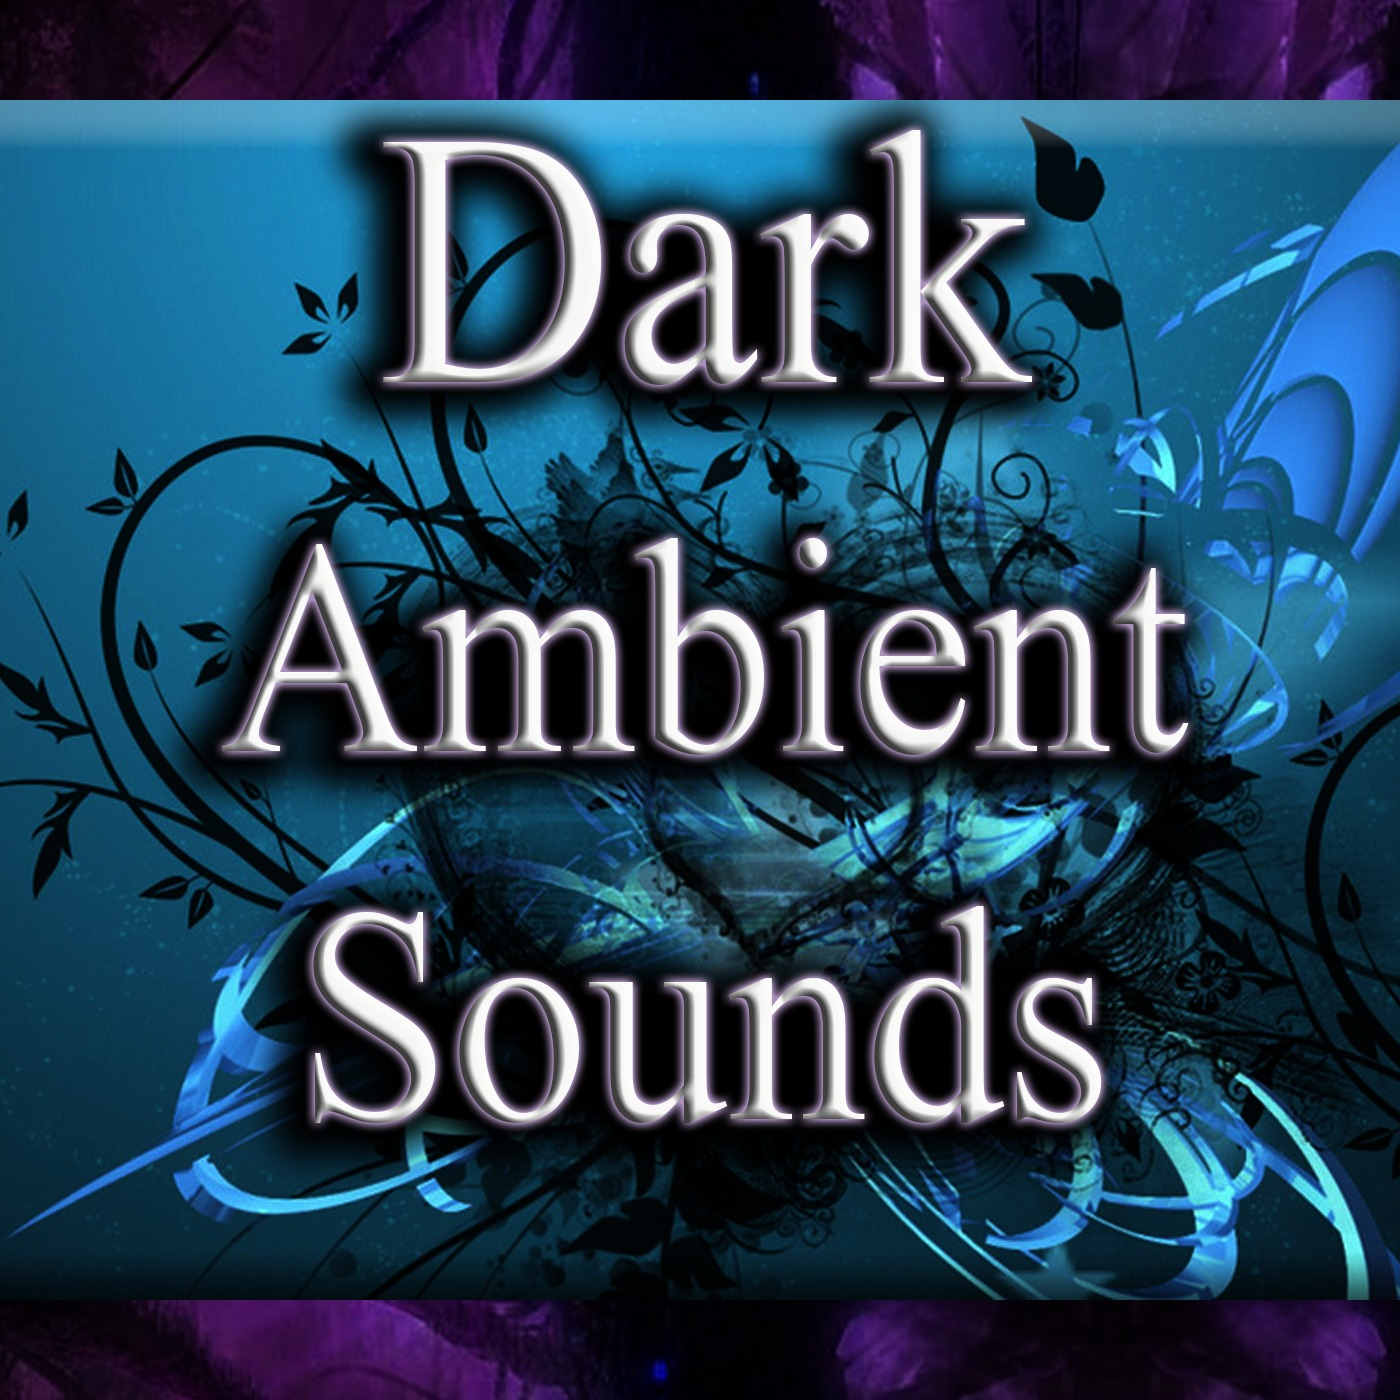 Dark Ambient Sounds by dow melissa on Apple Podcasts